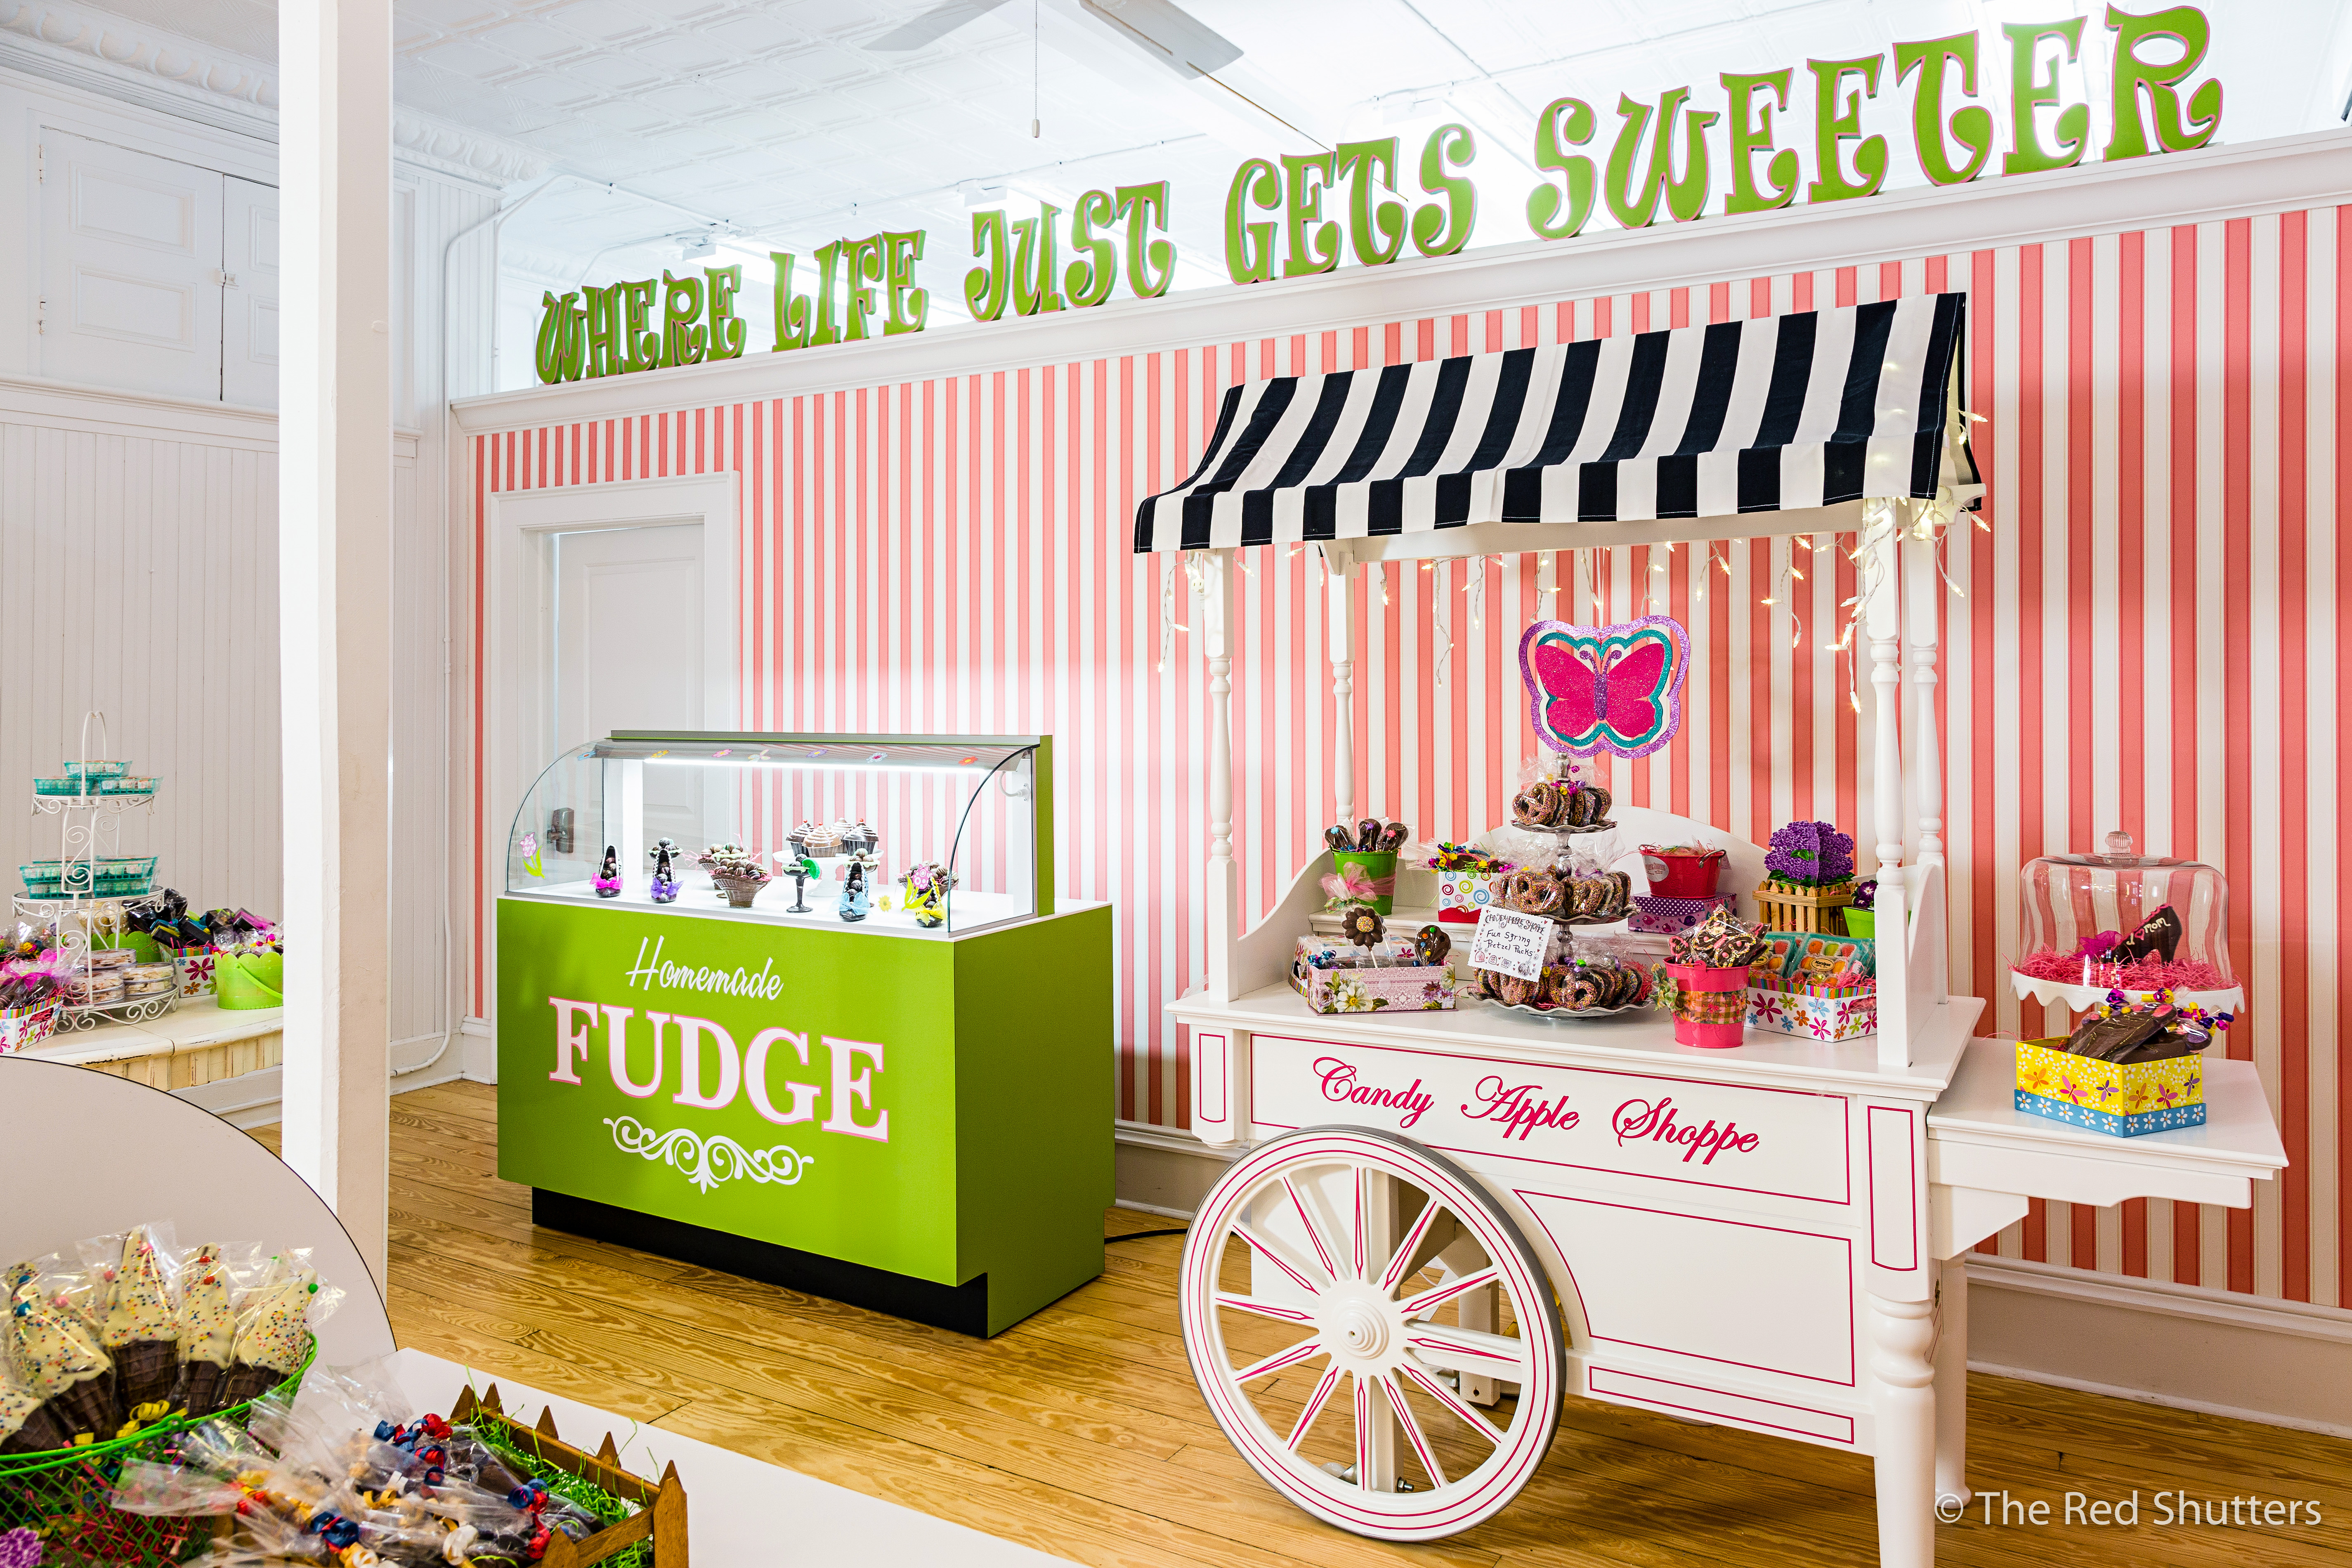 Sweet Client Candy Apple Shoppe